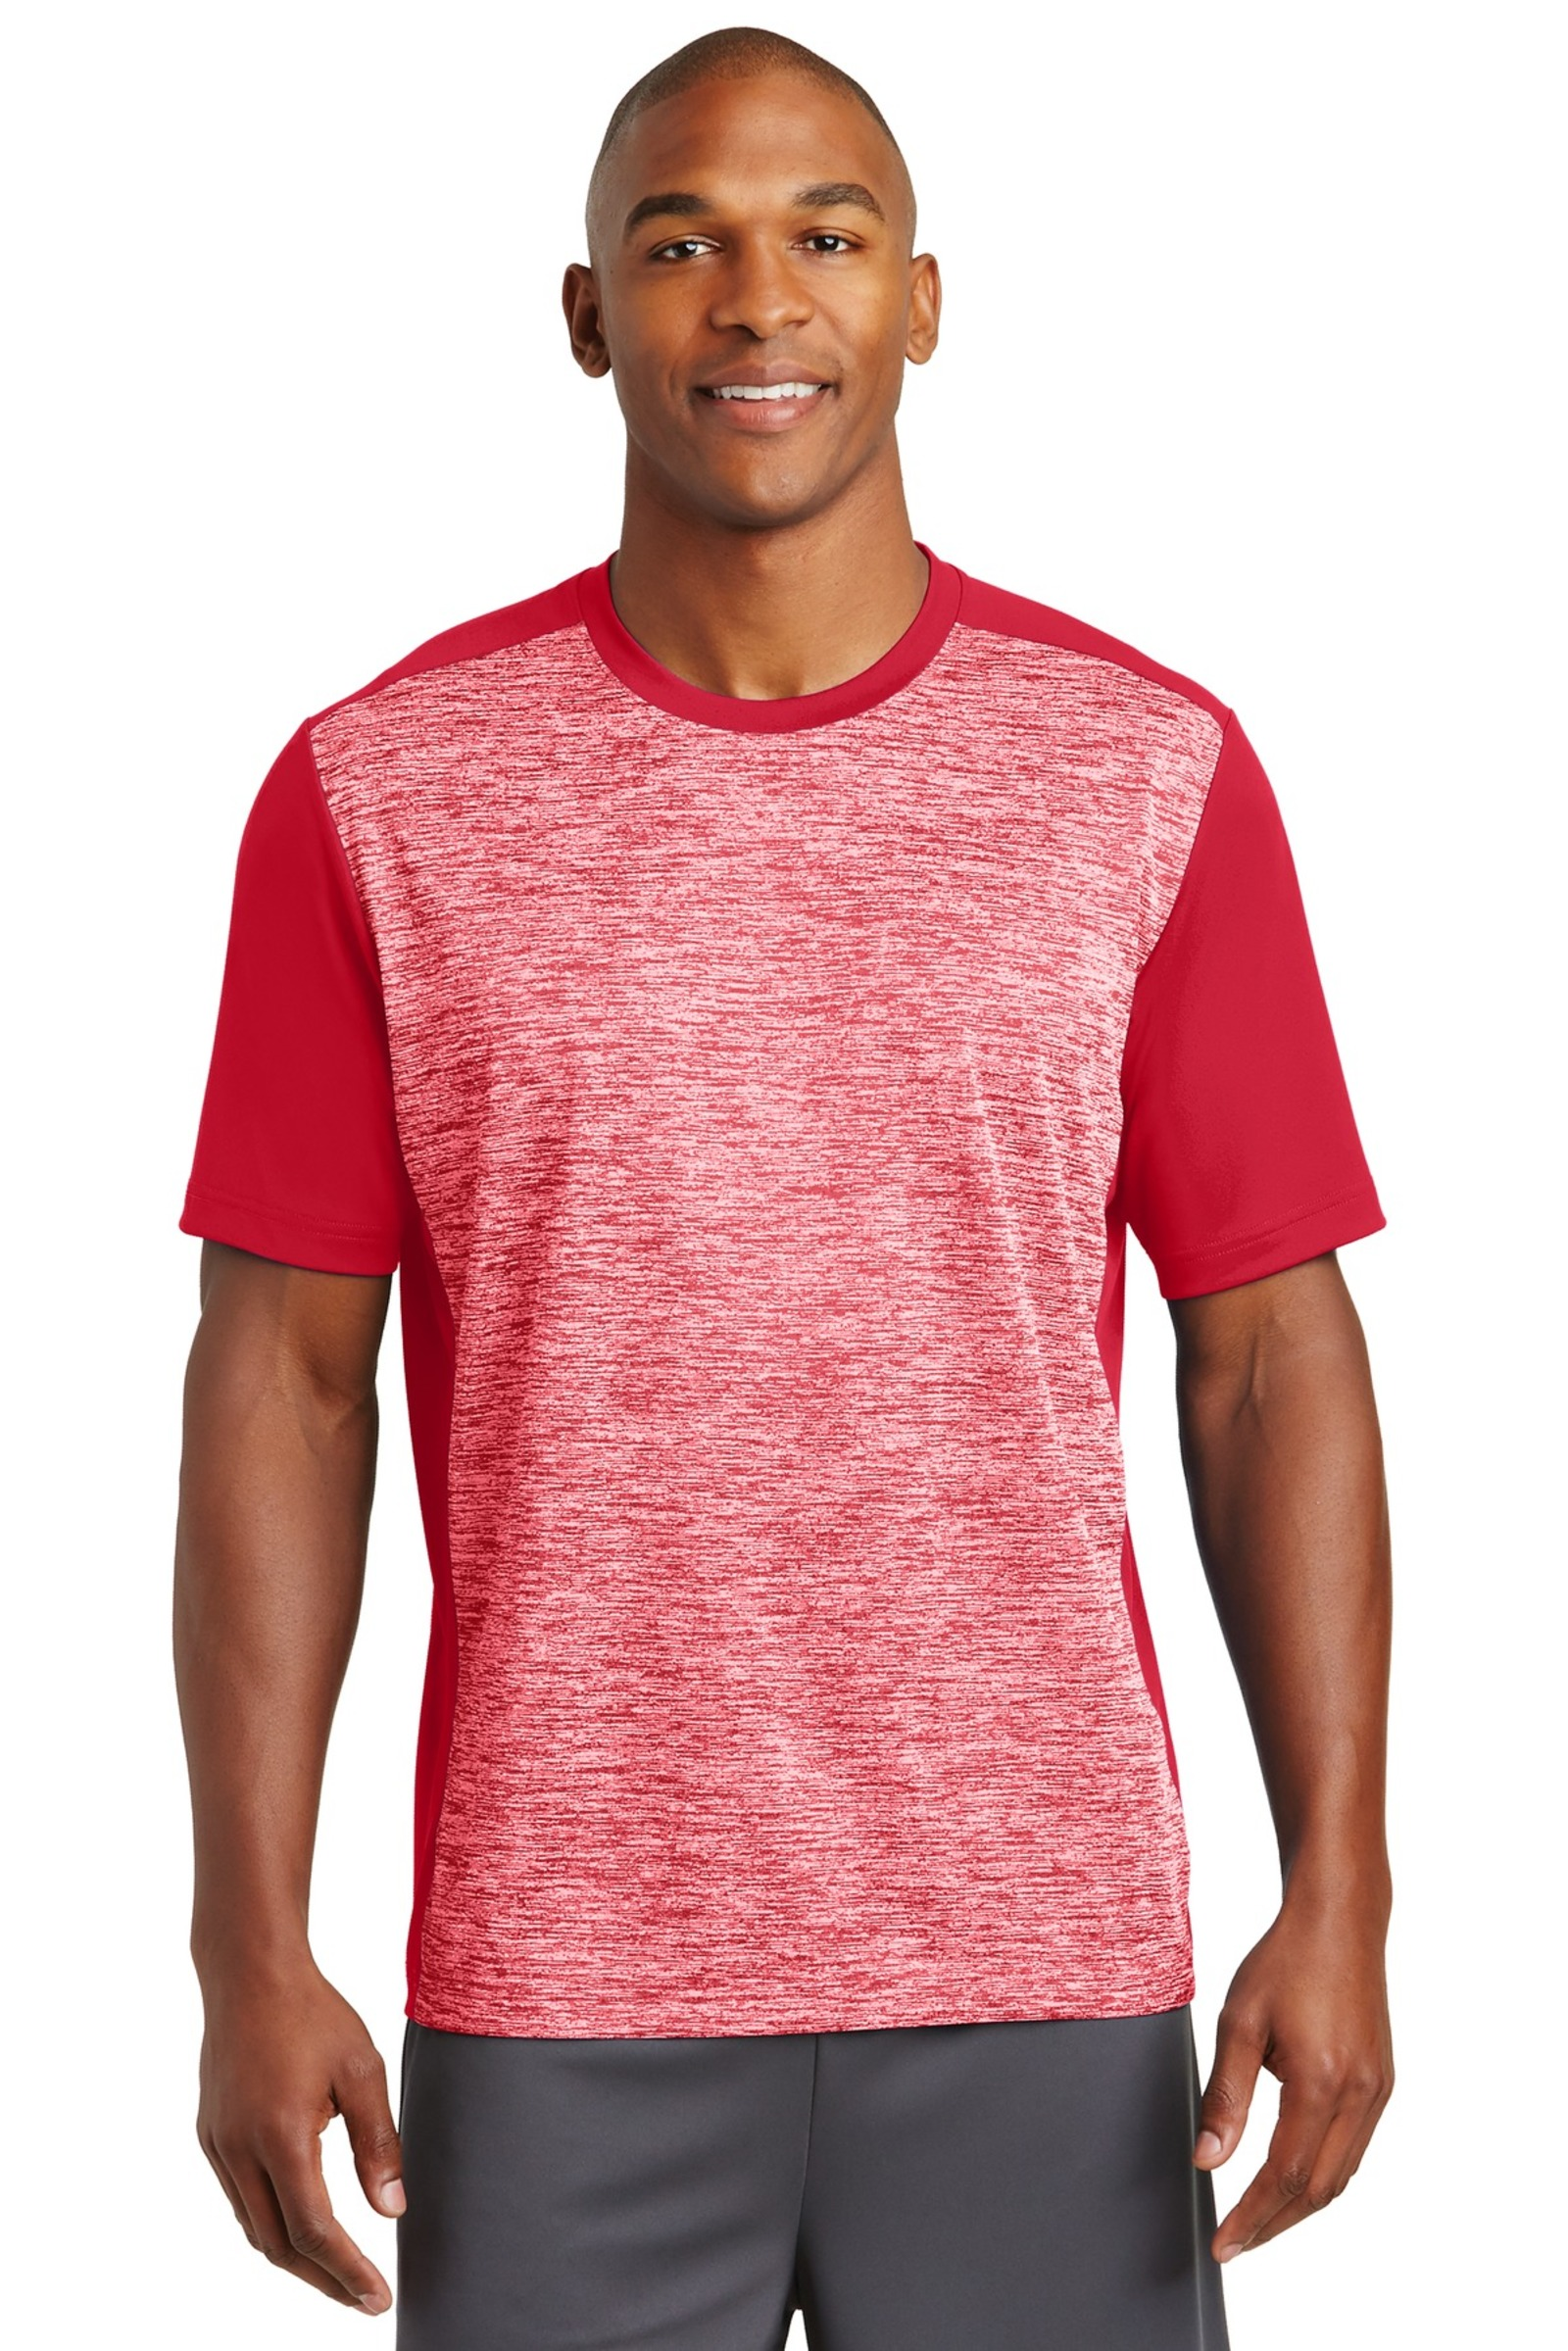 Sport-Tek Printed Men's PosiCharge Electric Heather Colorblock Tee